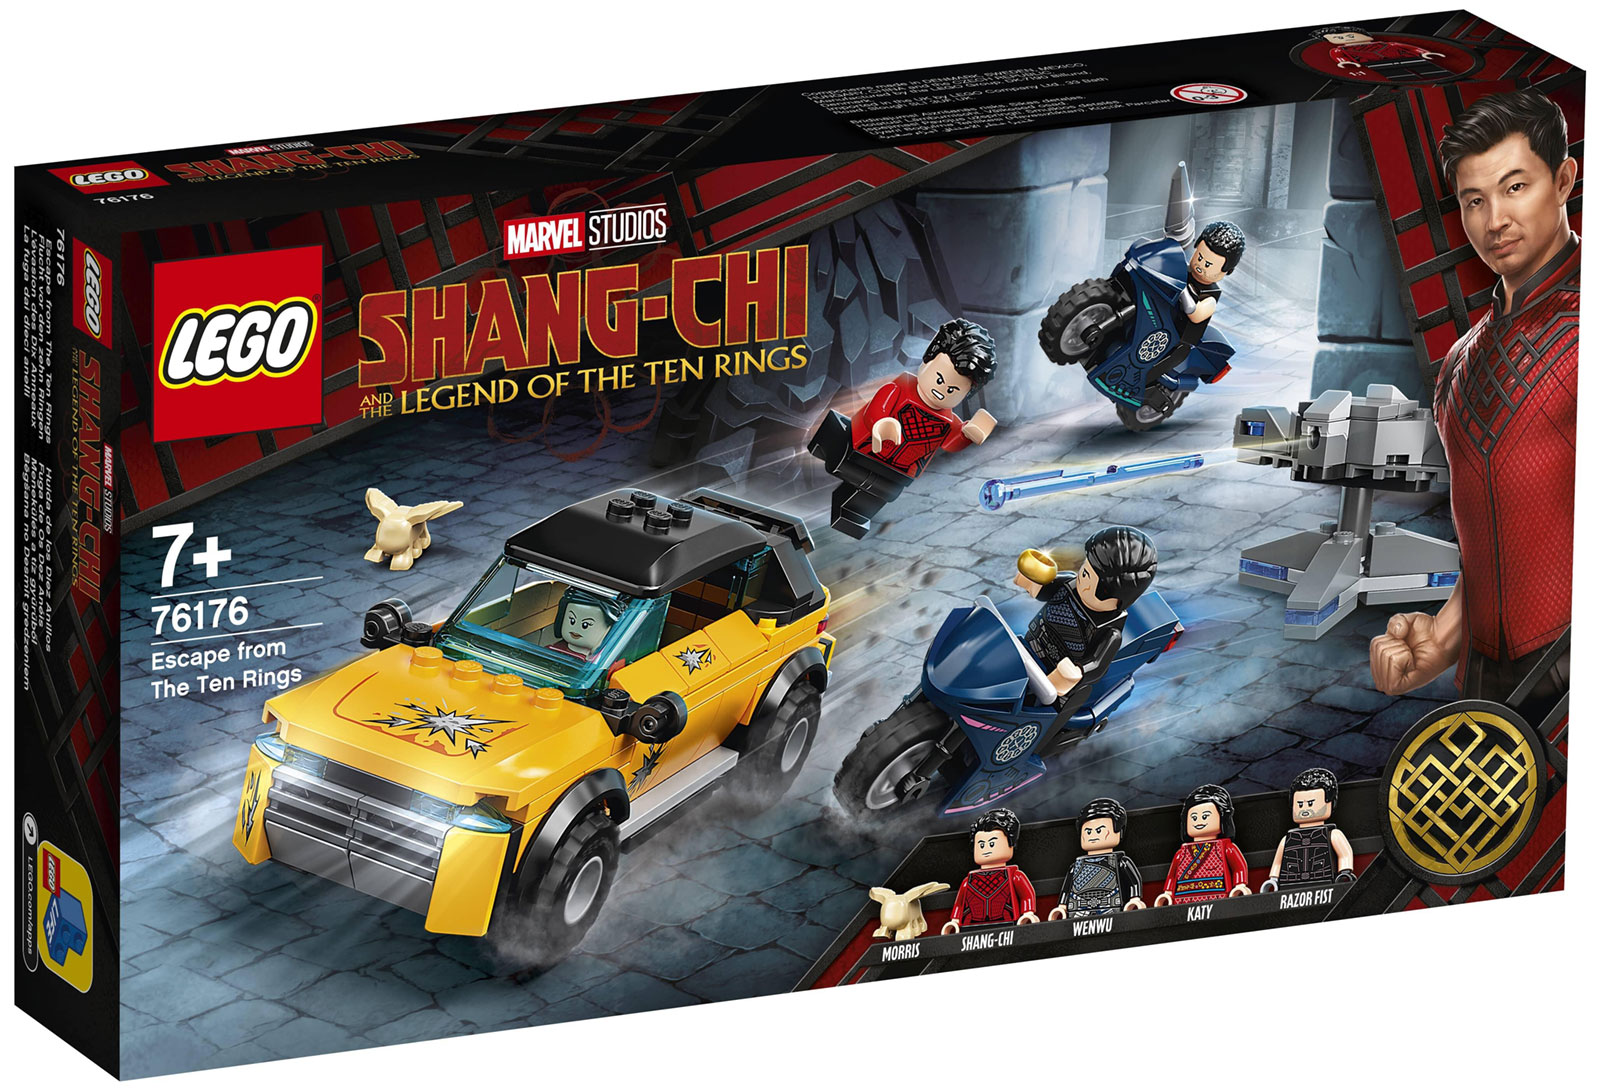 Nouveau LEGO Marvel Shang-Chi 76176 Escape from the Ten Rings